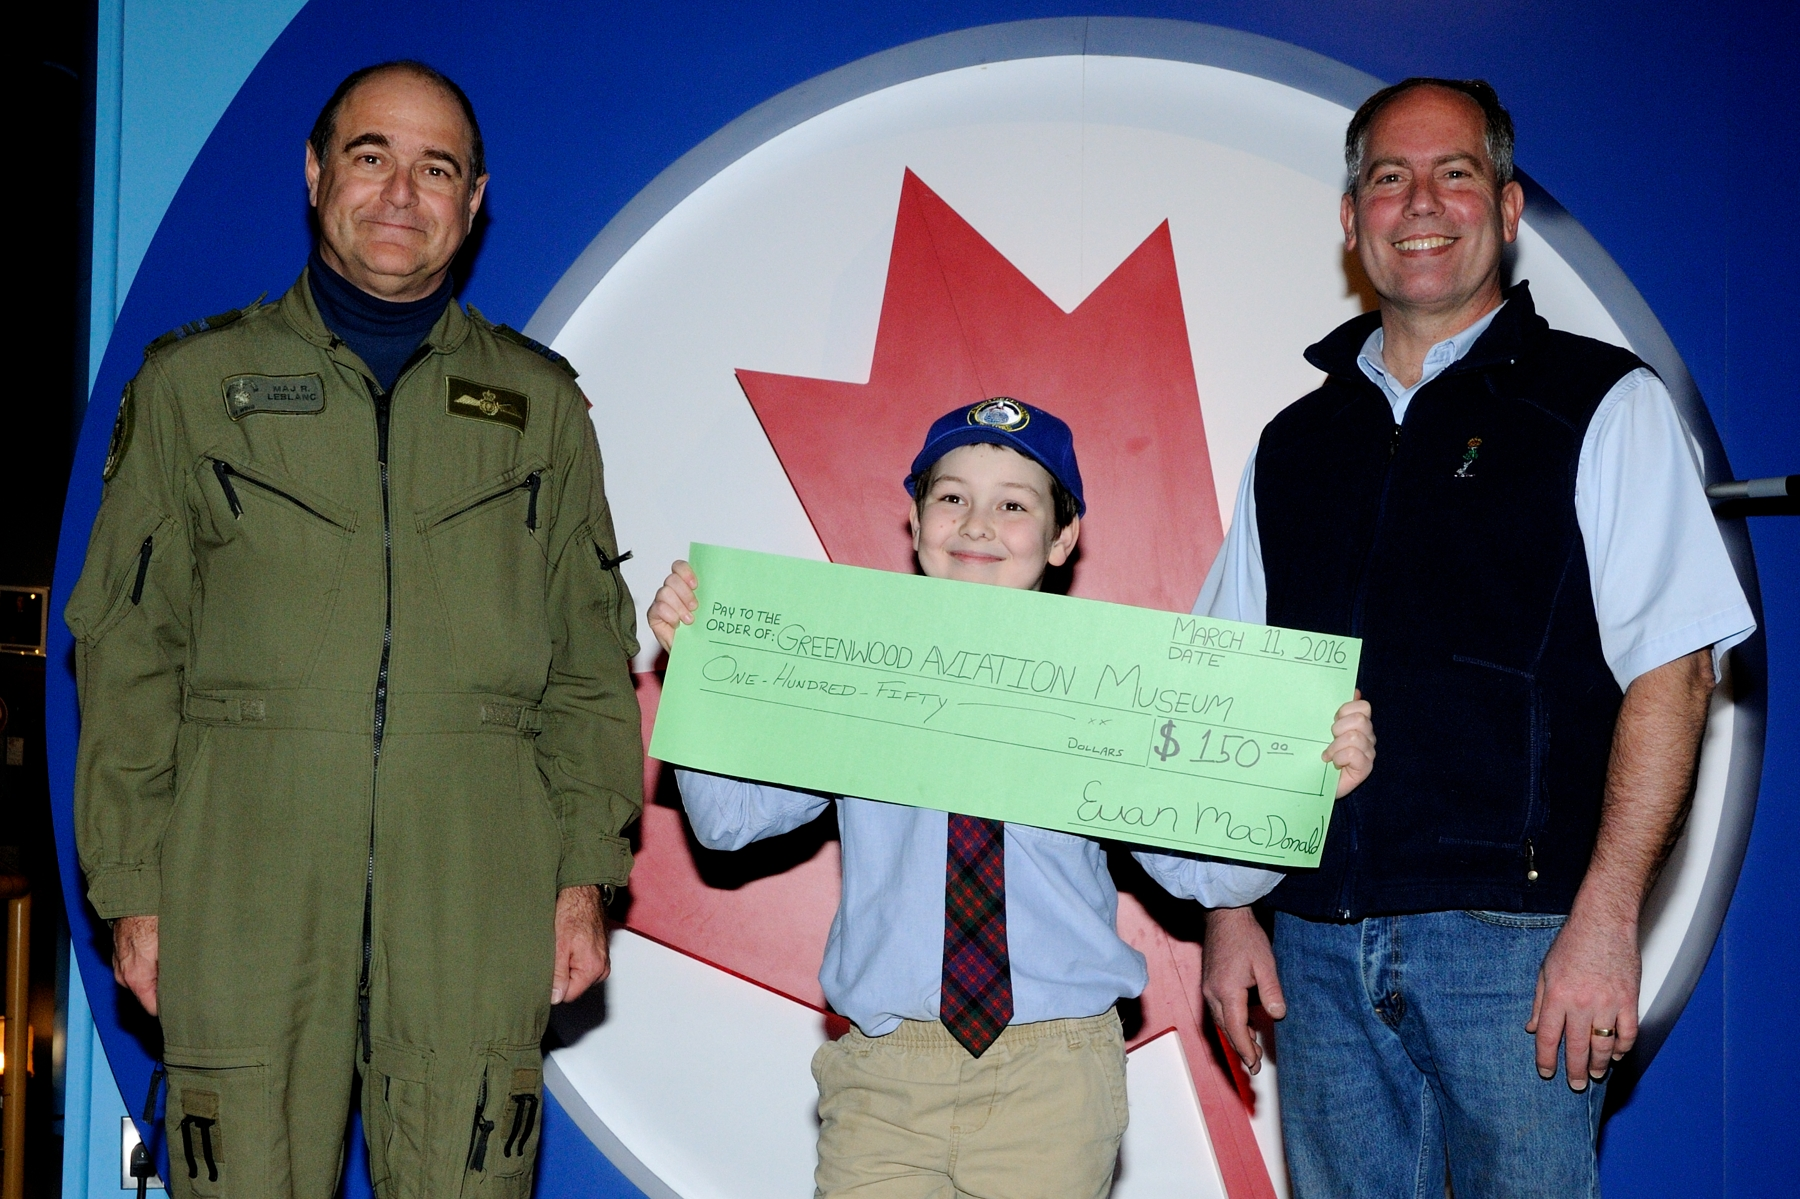 Euan MacDonald left some of the fund raised – $150 – for his own Lancaster dream with Major Richard LeBlanc and Dave Saulnier at the Greenwood Military Aviation Museum on March 11, 2016, following a specially-arranged tour of the museum and 14 Wing Greenwood. He wanted to support restoration work on the museum's Lancaster project and he pledged another $500, so the dream grows bigger! PHOTO: Sergeant Peter Nicholson, GP2016-0041